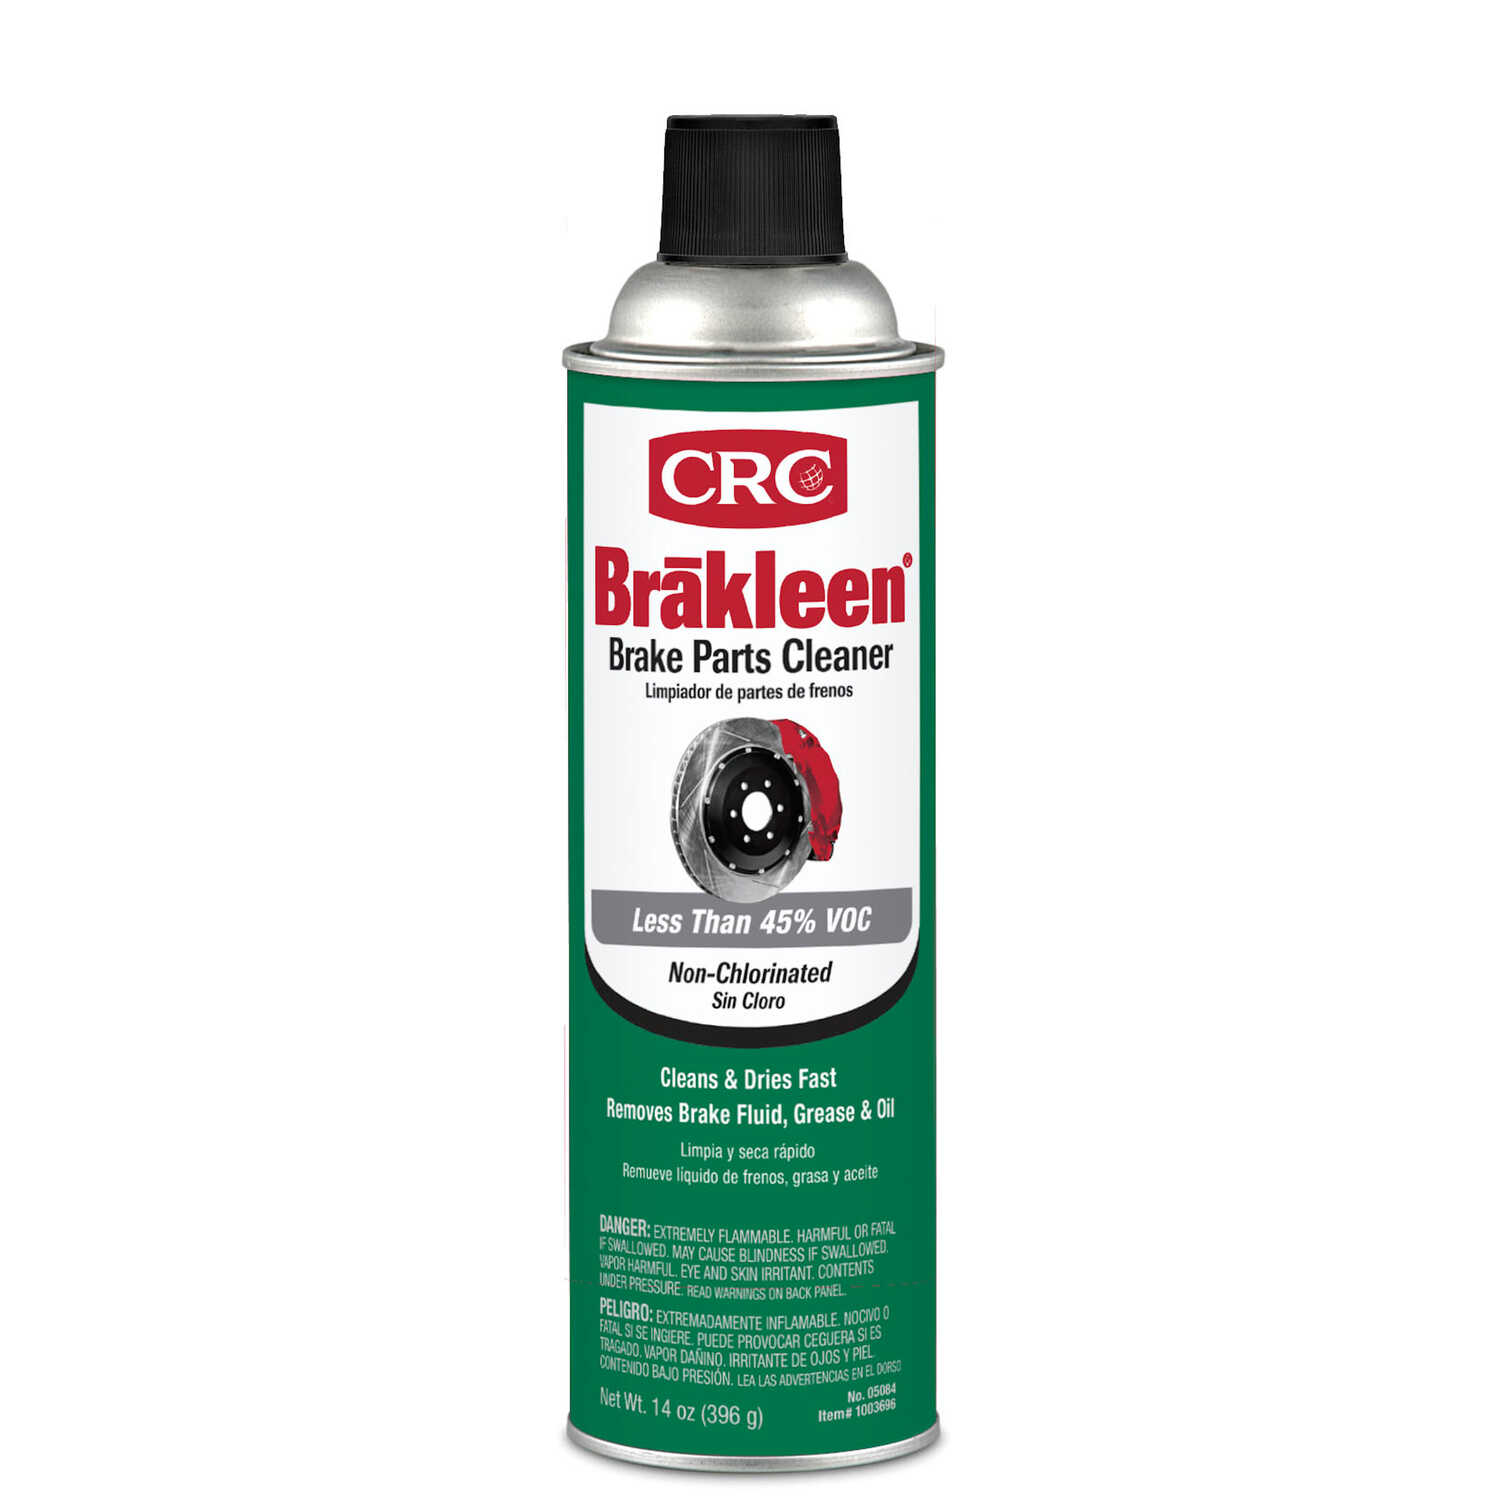 CRC  Brakleen  Brake Parts Cleaner  14 oz.